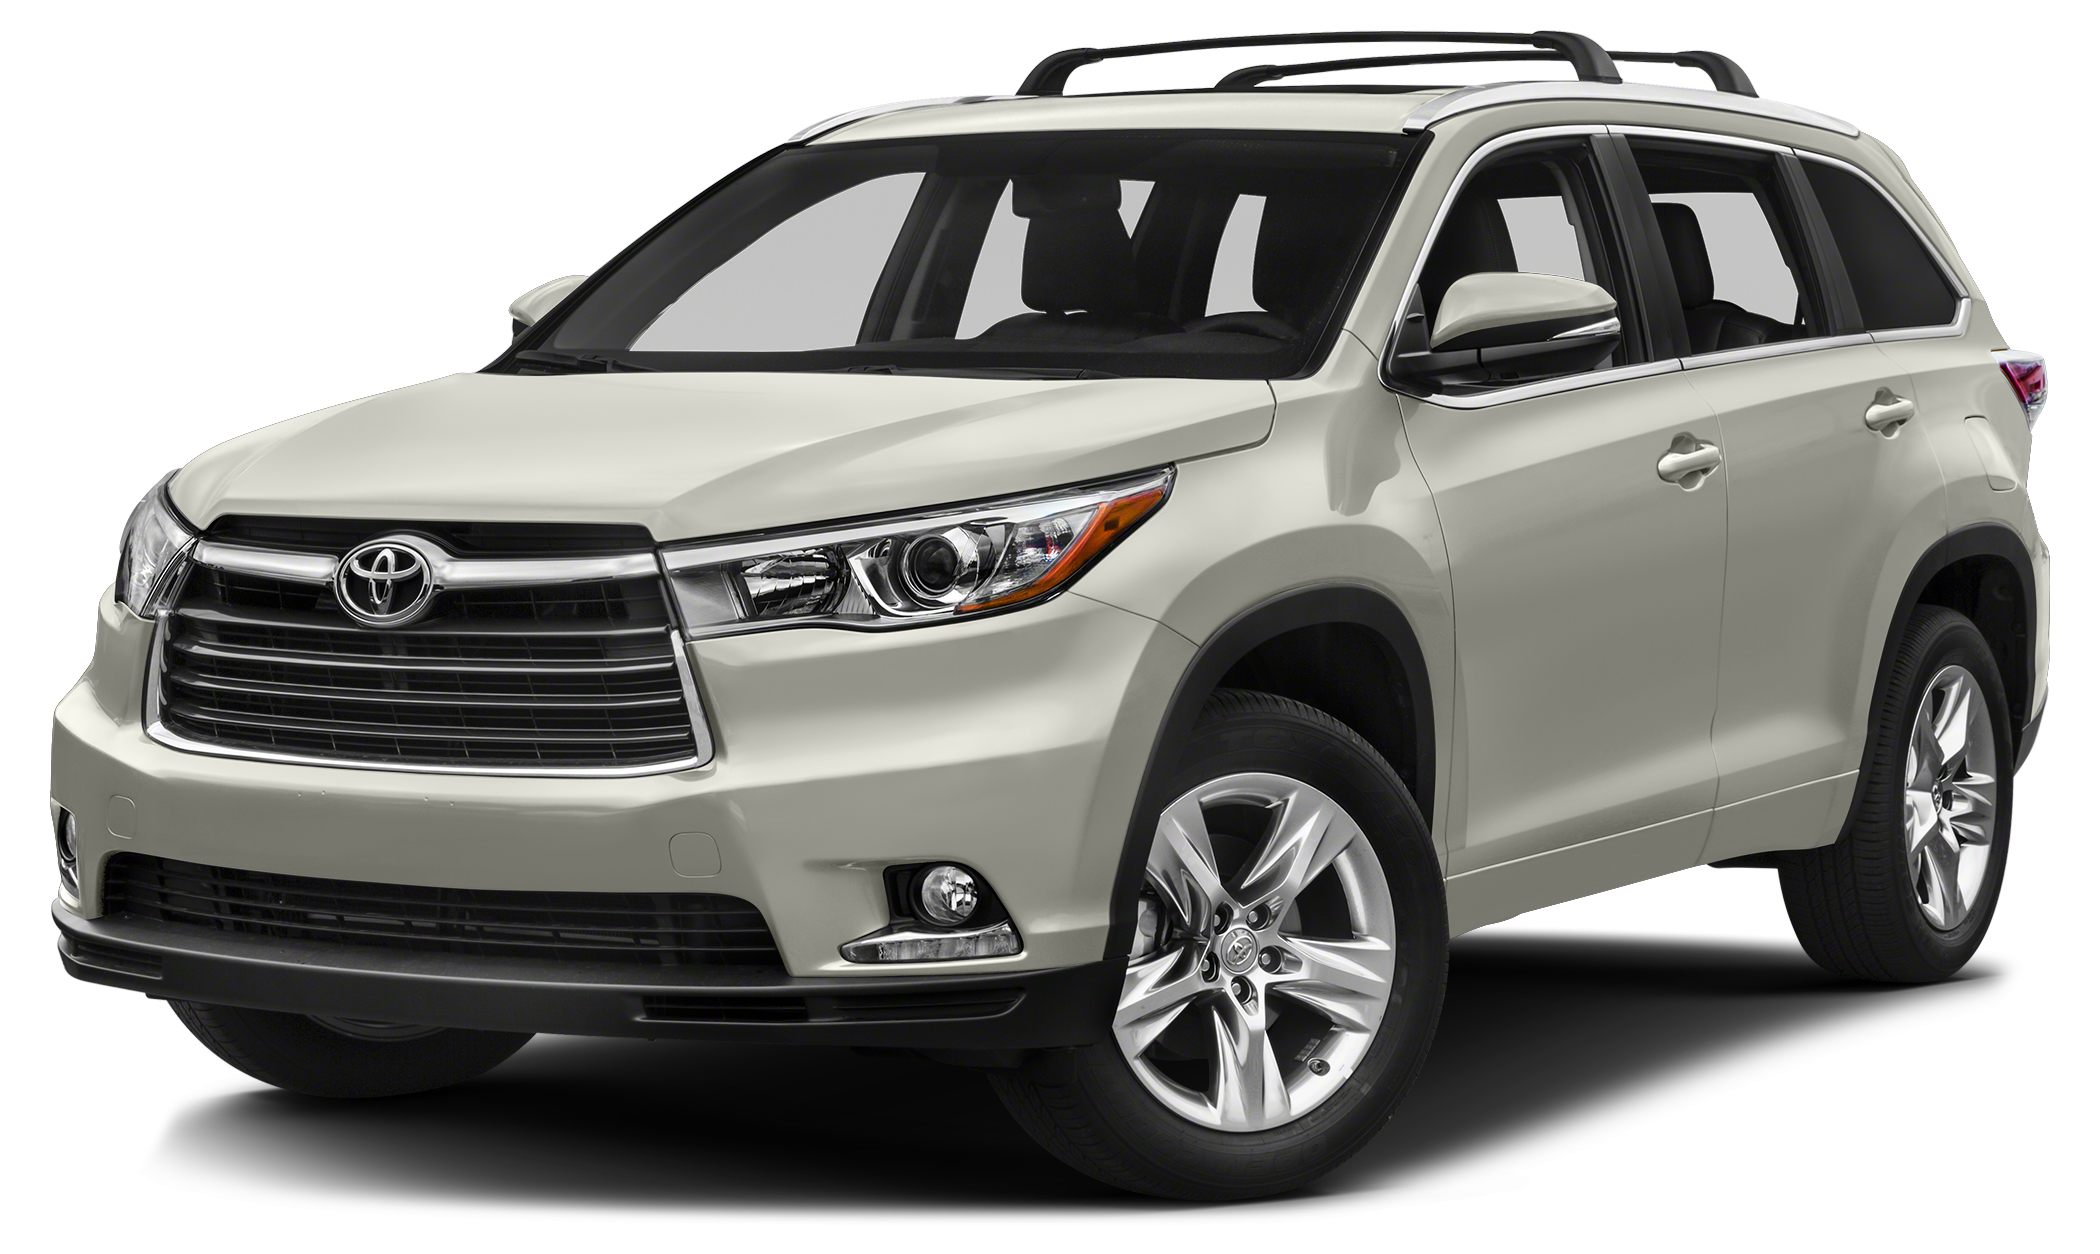 2015 Toyota Highlander XLE PRICED TO MOVE 800 below Kelley Blue Book EPA 24 MPG Hwy18 MPG City